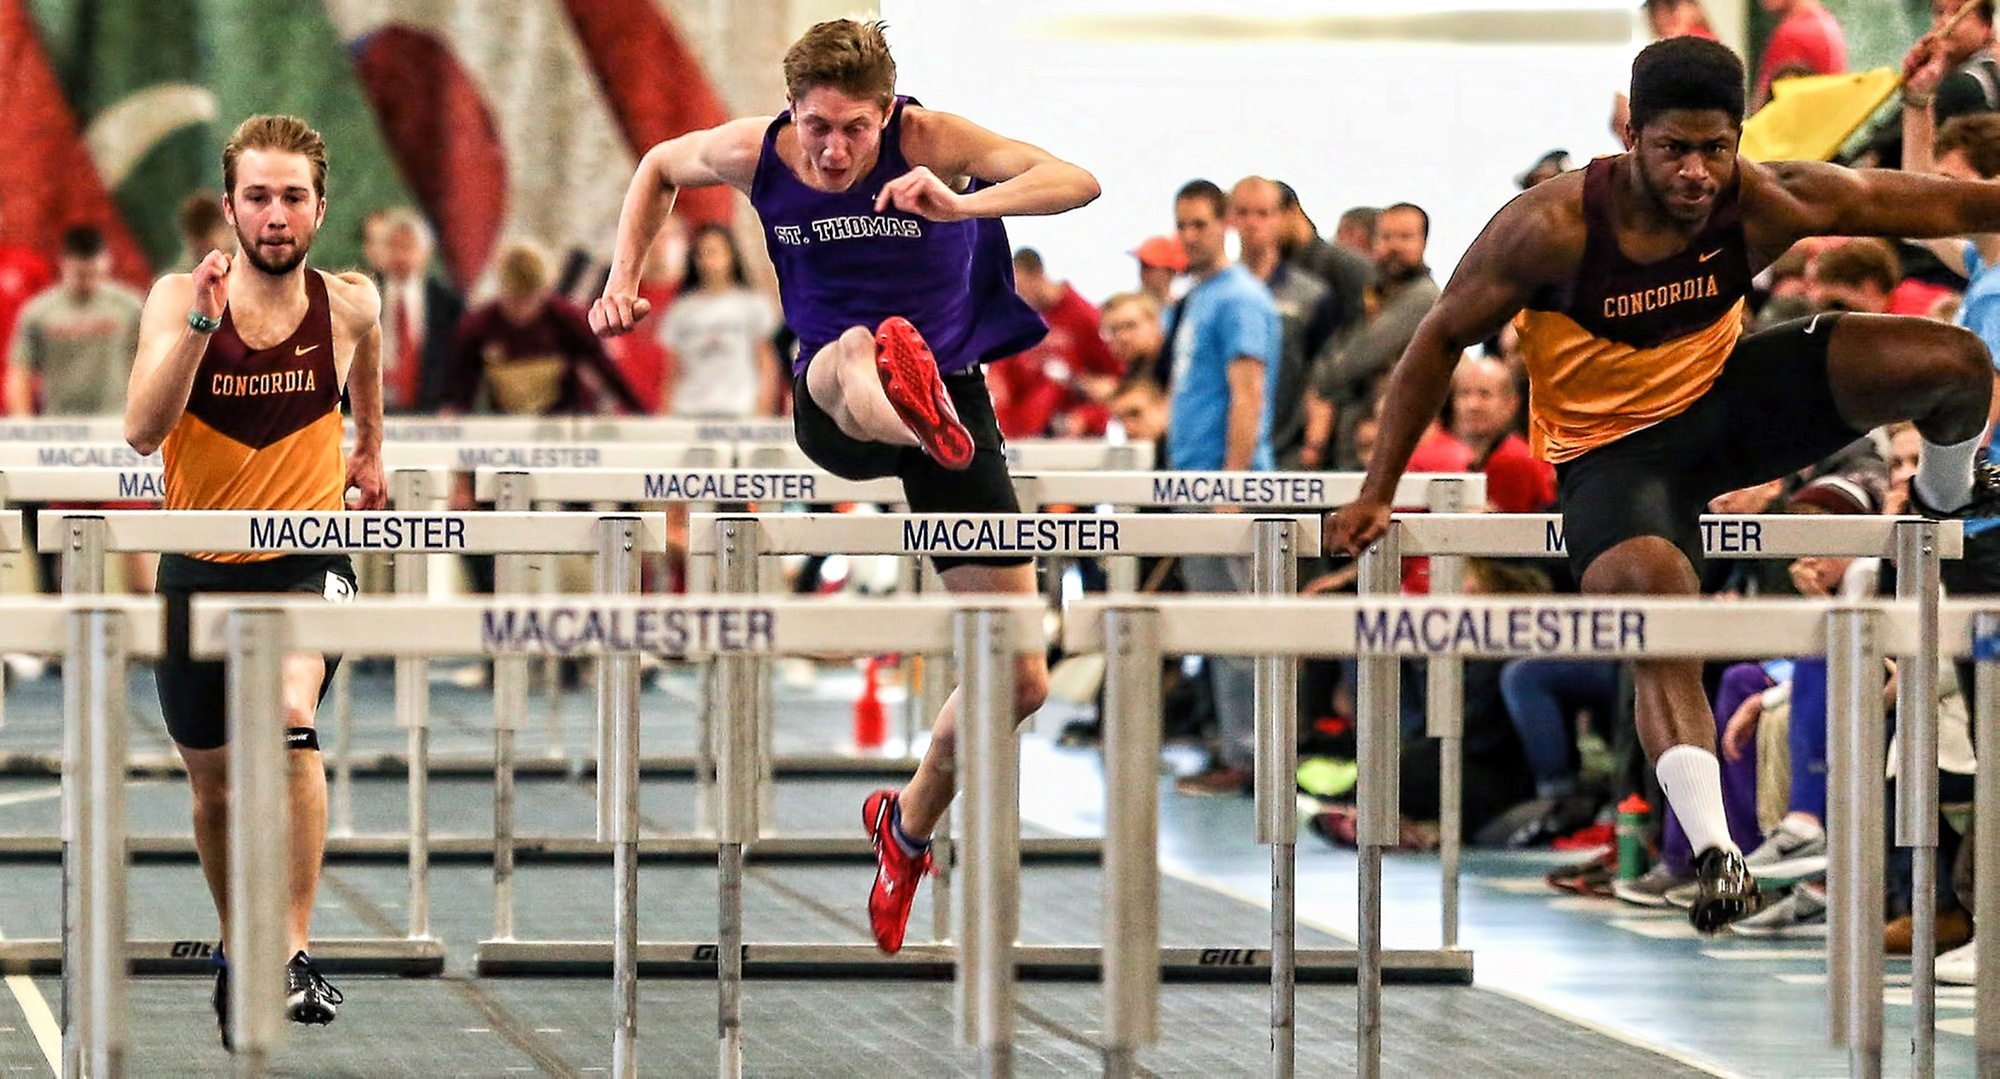 Willie Julkes (R) races through the 60-meter hurdles on his way to finishing in fifth place in the event. (Photo courtesy of Nathan Lodermeier)